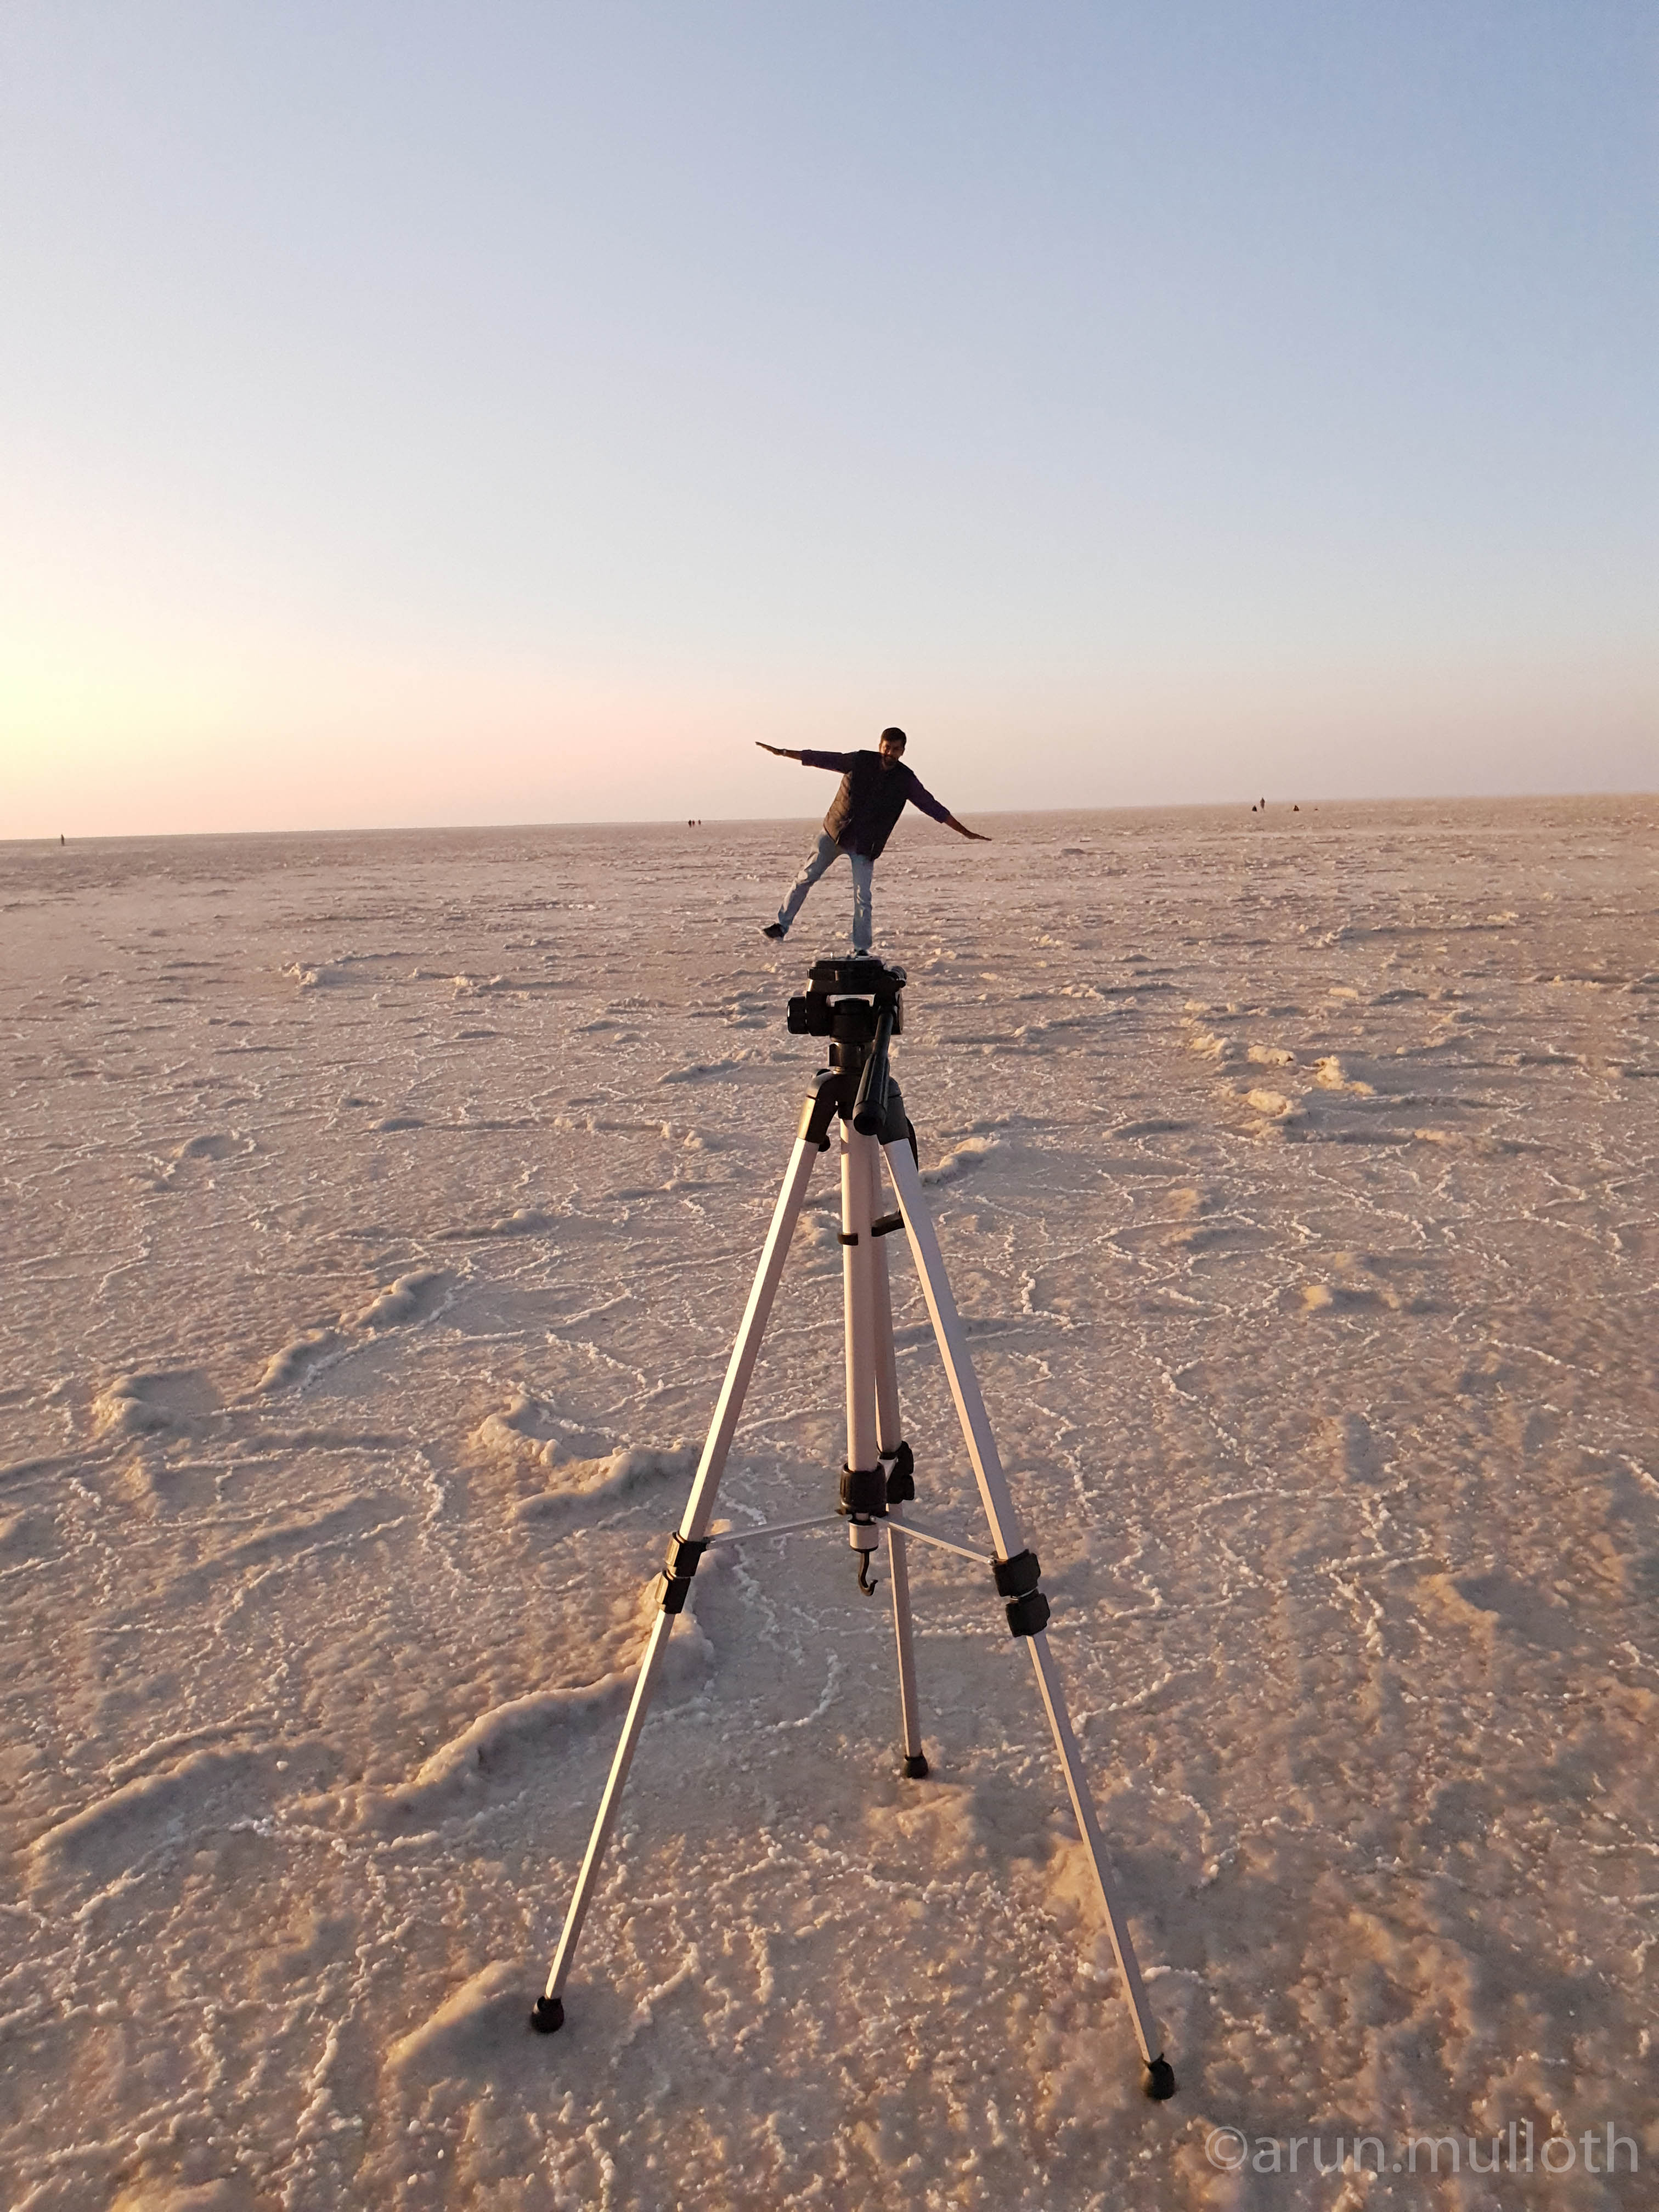 Perspective photography - Rann of Kutch